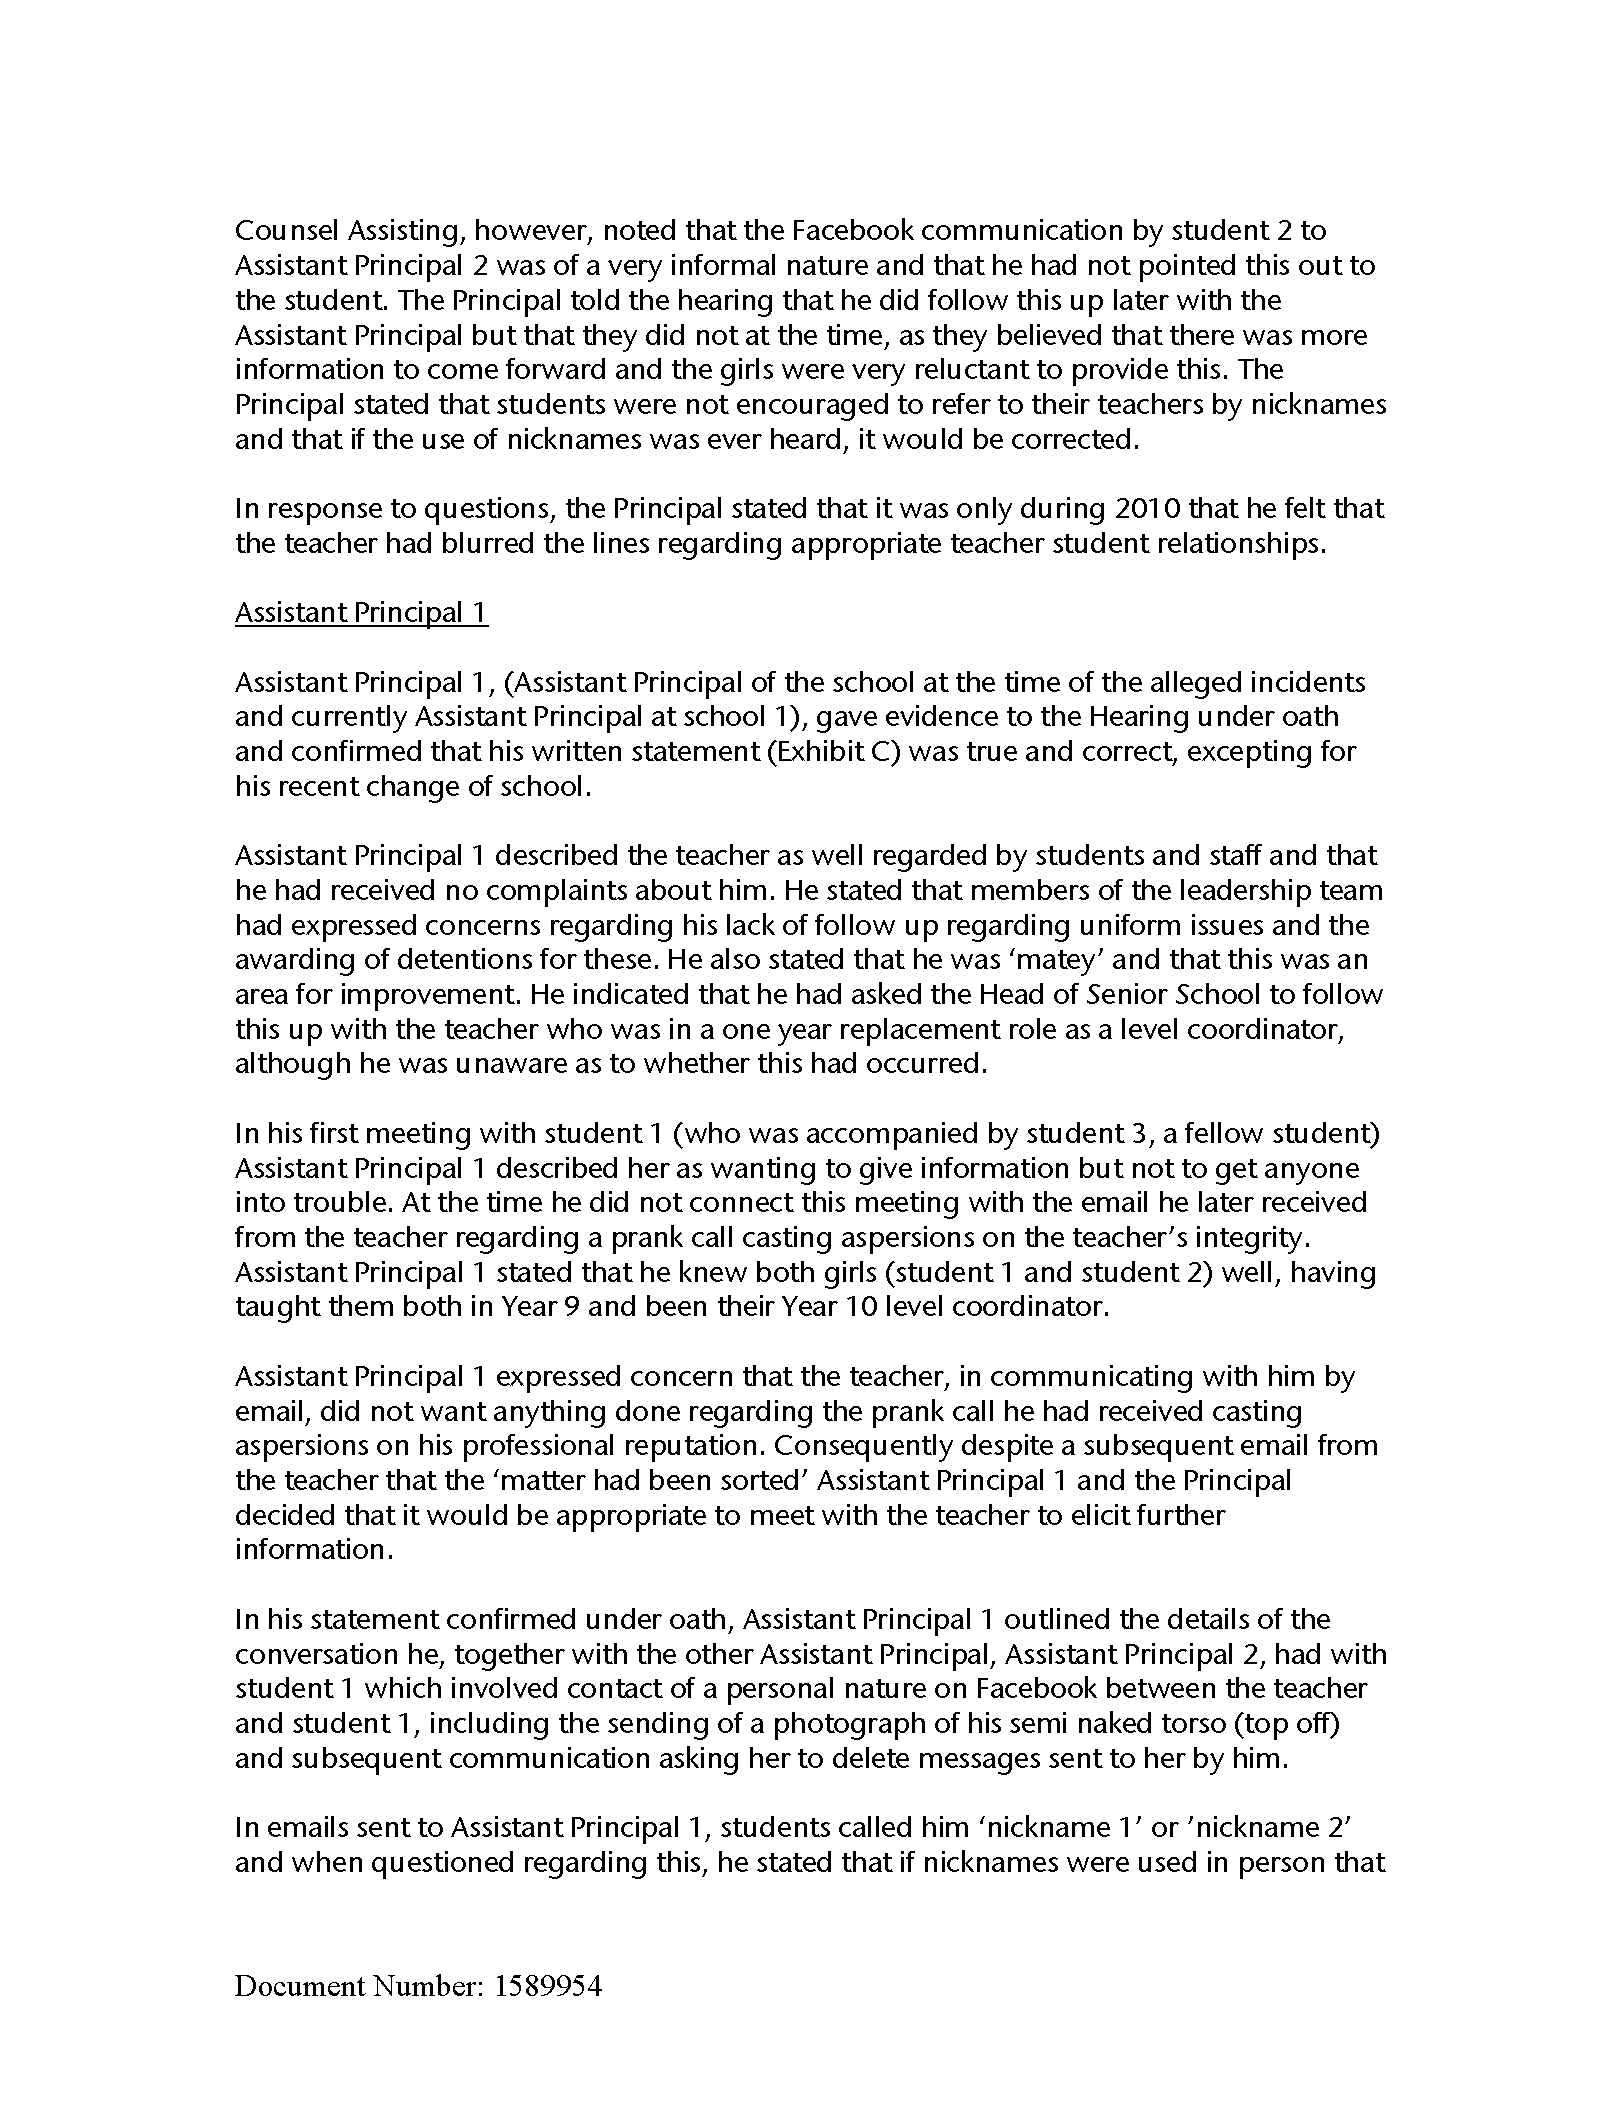 Copy of SanitisedPleydellDecision06.png